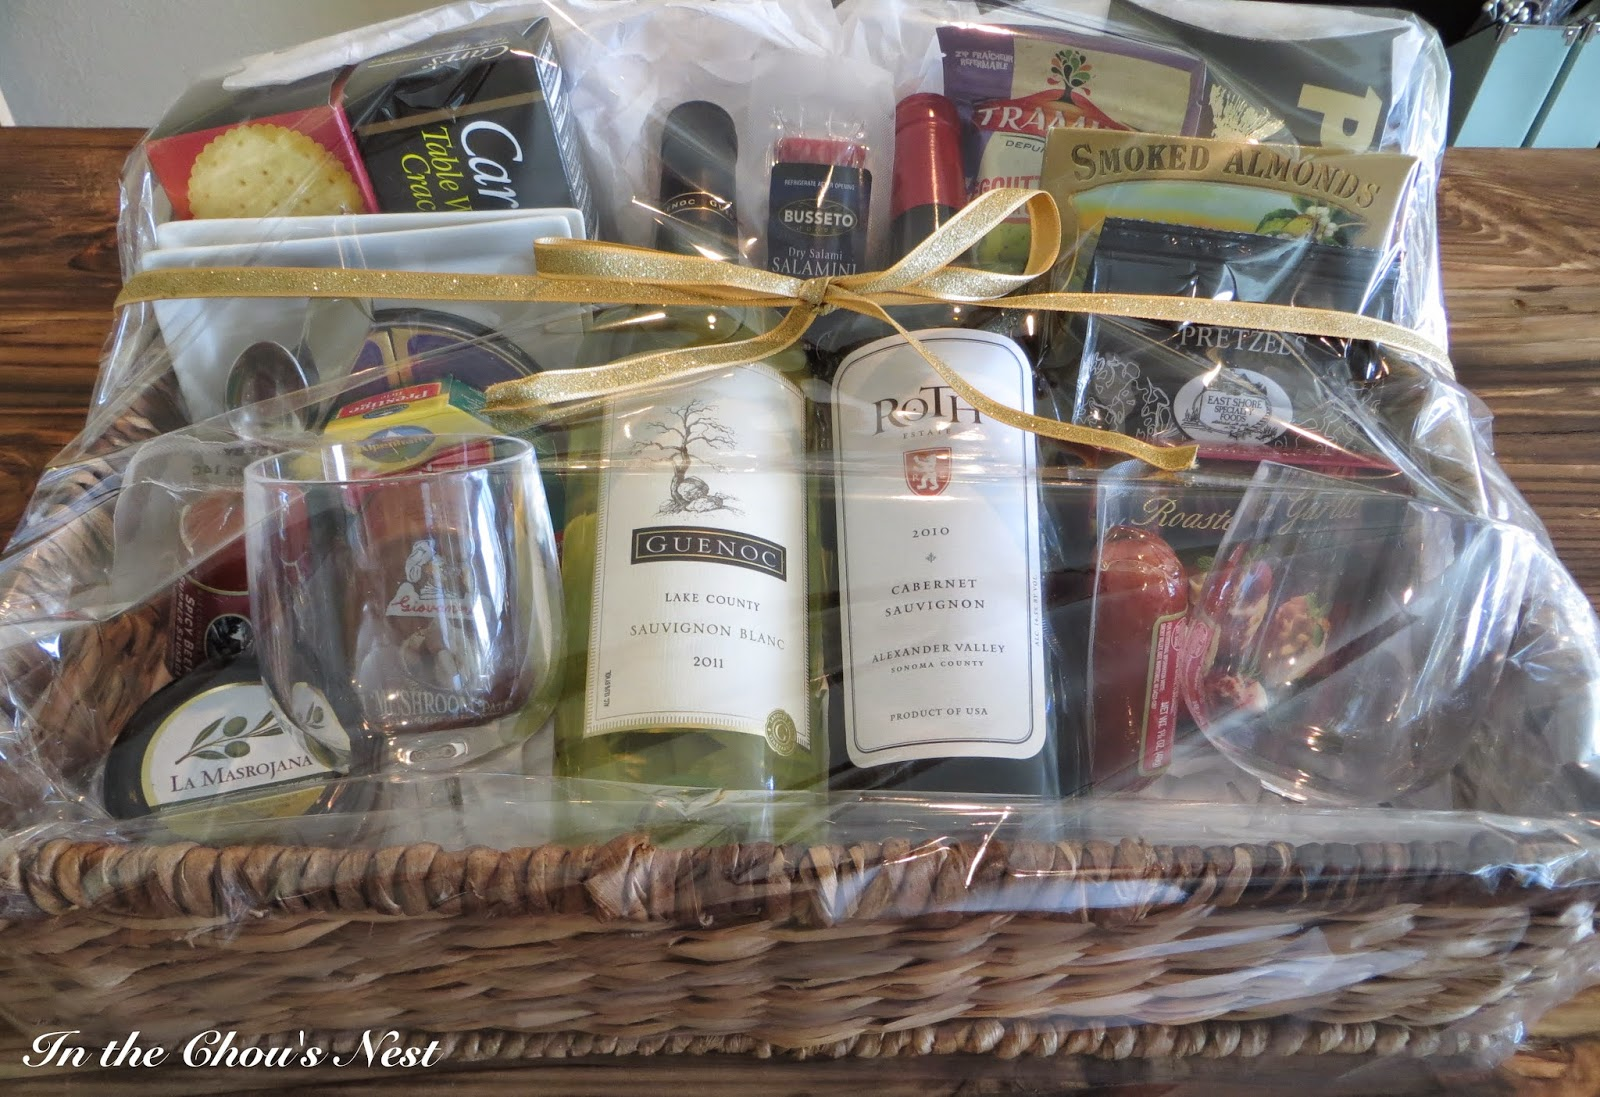 Here is what the gift basket looked like all put together.